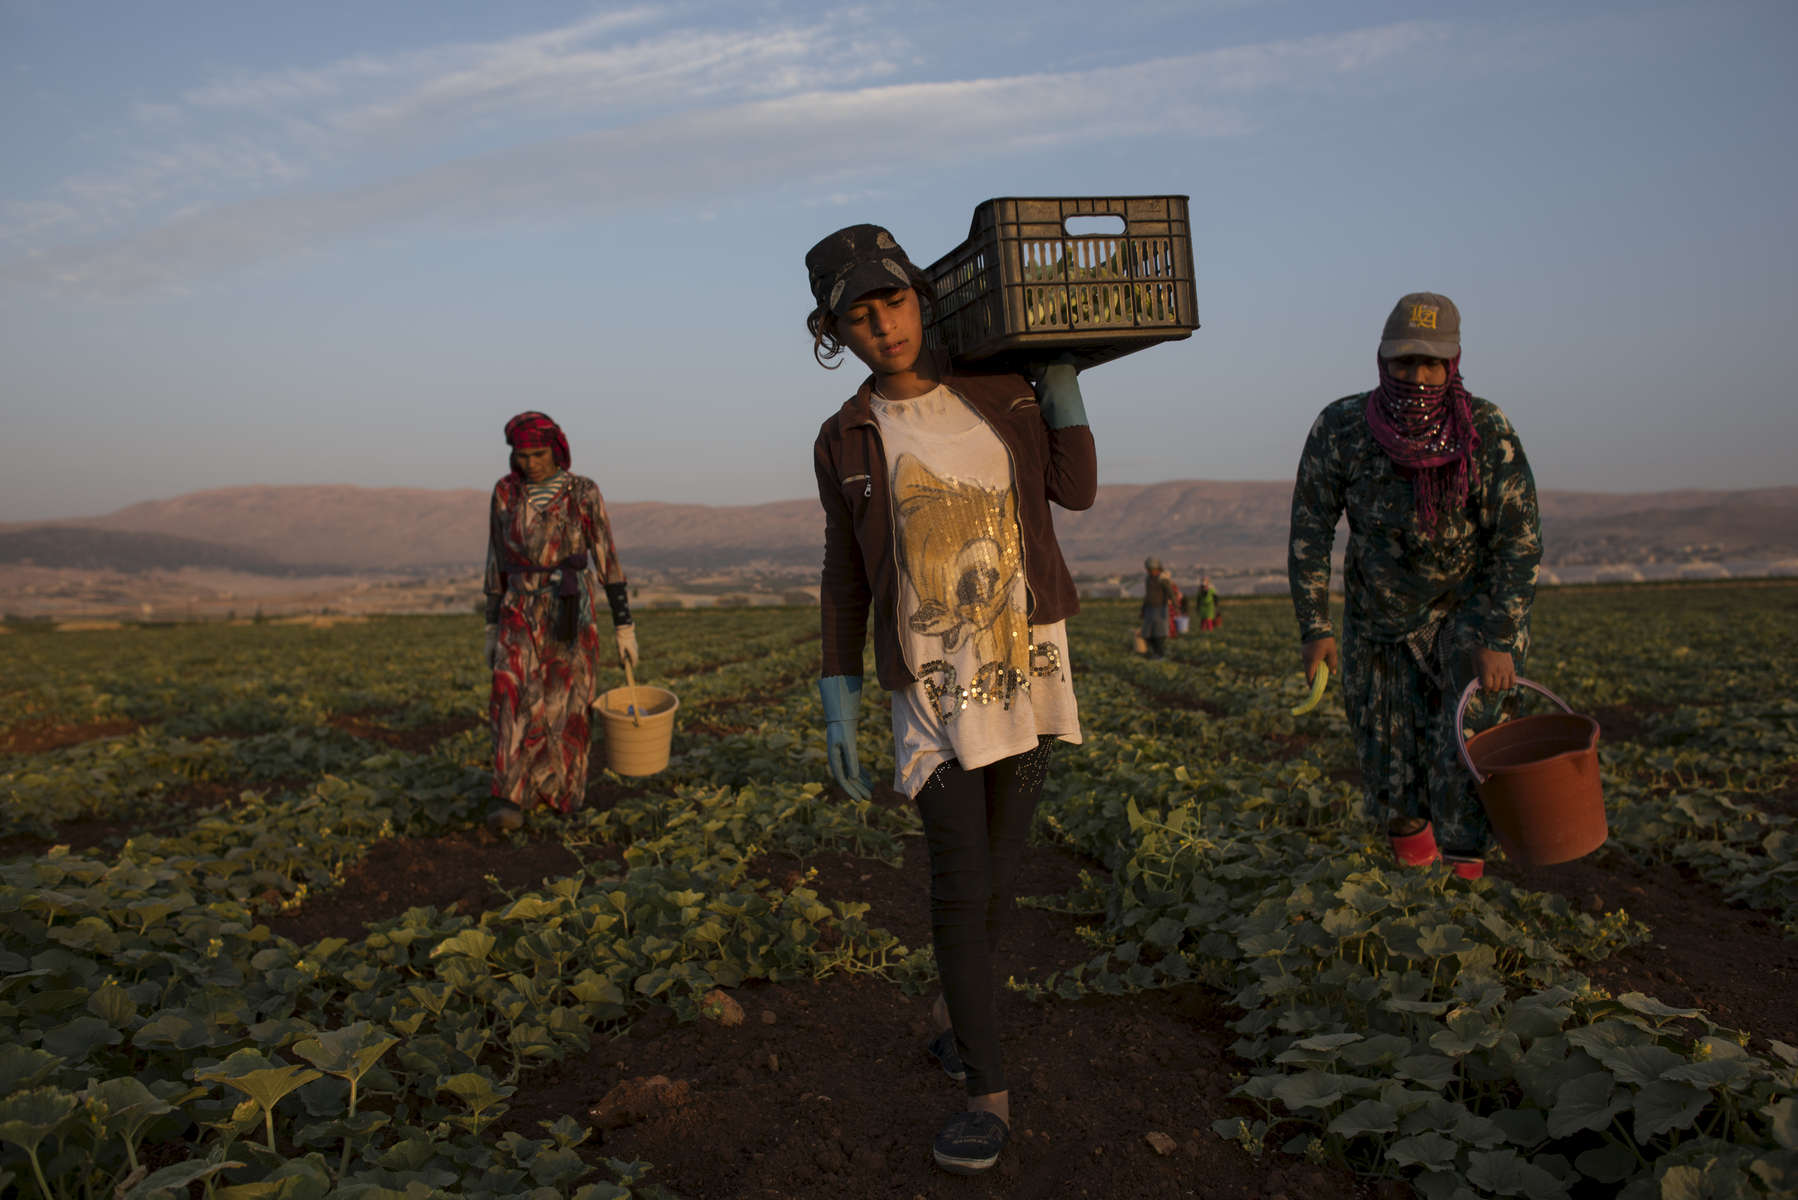 Hanaa picks cucumbers at dawn with other Syrian refugees from her informal tented settlement in the Bekaa Valley, between the city of Zahle and Baalbak, in Lebanon, August 1, 2015.  Hanaa and her family fled Syria in 2011 at the beginning of the Syrian civil war, and moved to this settlement two years ago, along with other Syrian refugees from Hasaka and the surrounding areas. Hanaa and other children in the settlement work for up to ten hours a day in agricultural lands owned by Lebanese in the area, and earn the equivalent of $5. per day.